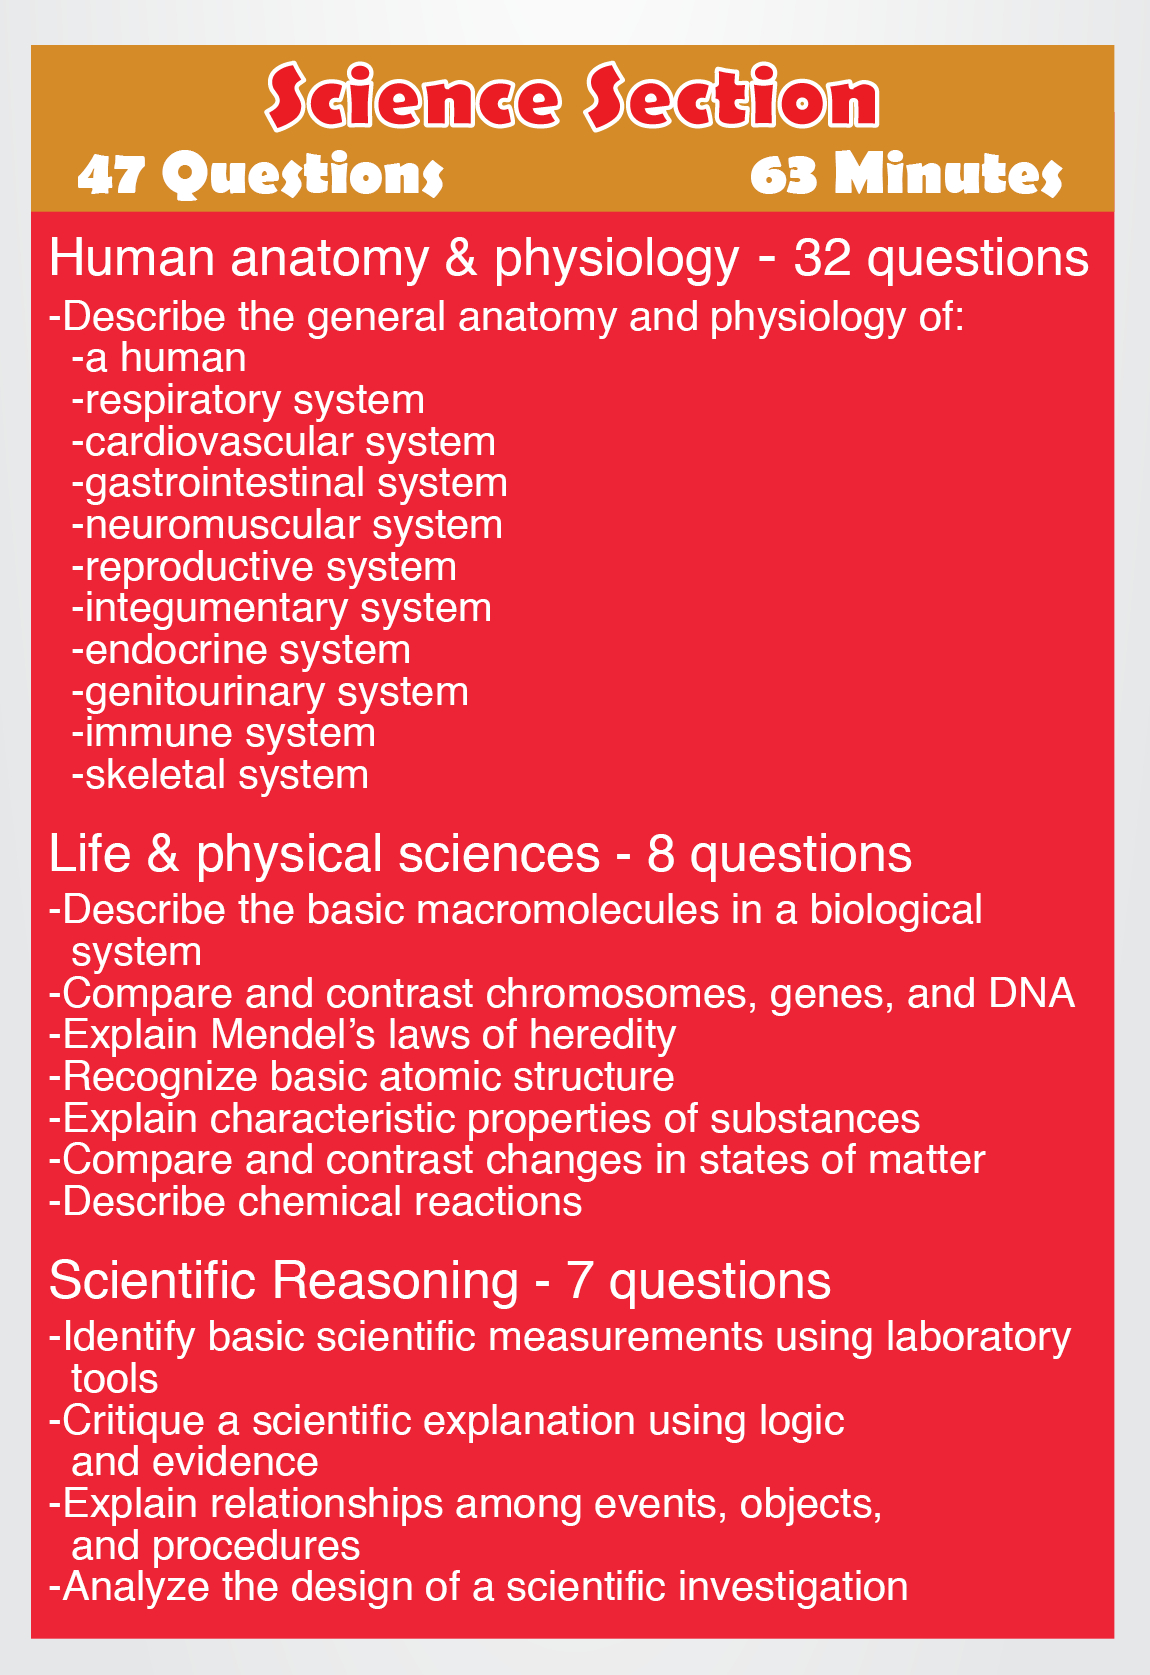 Teas Science - Content Areas Such As The Following: Human Anatomy - Free Printable Teas Test Study Guide